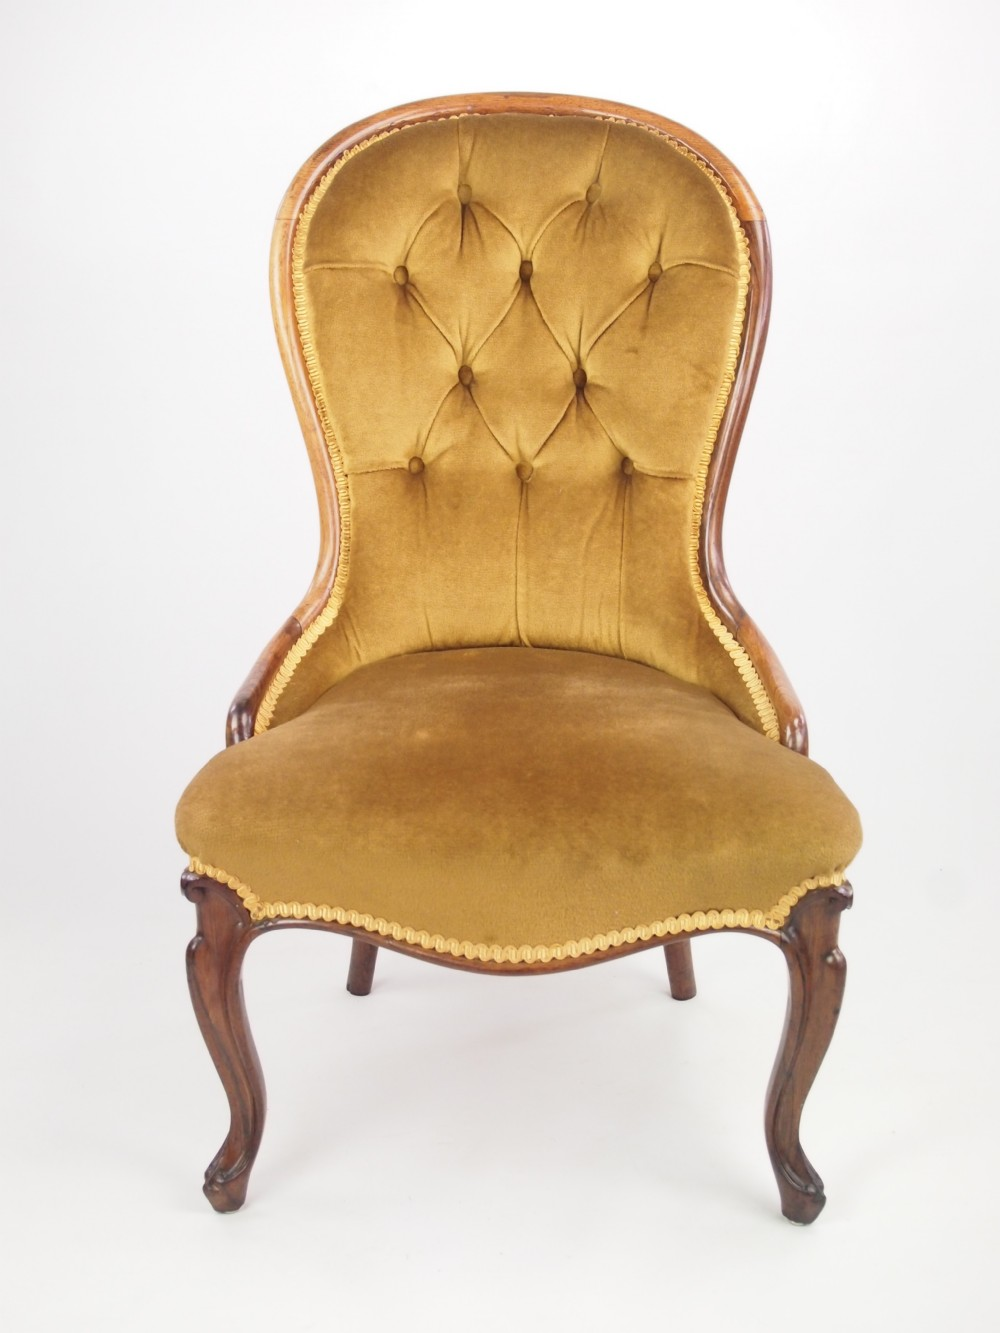 Nursing Chair Antique Antique Furniture